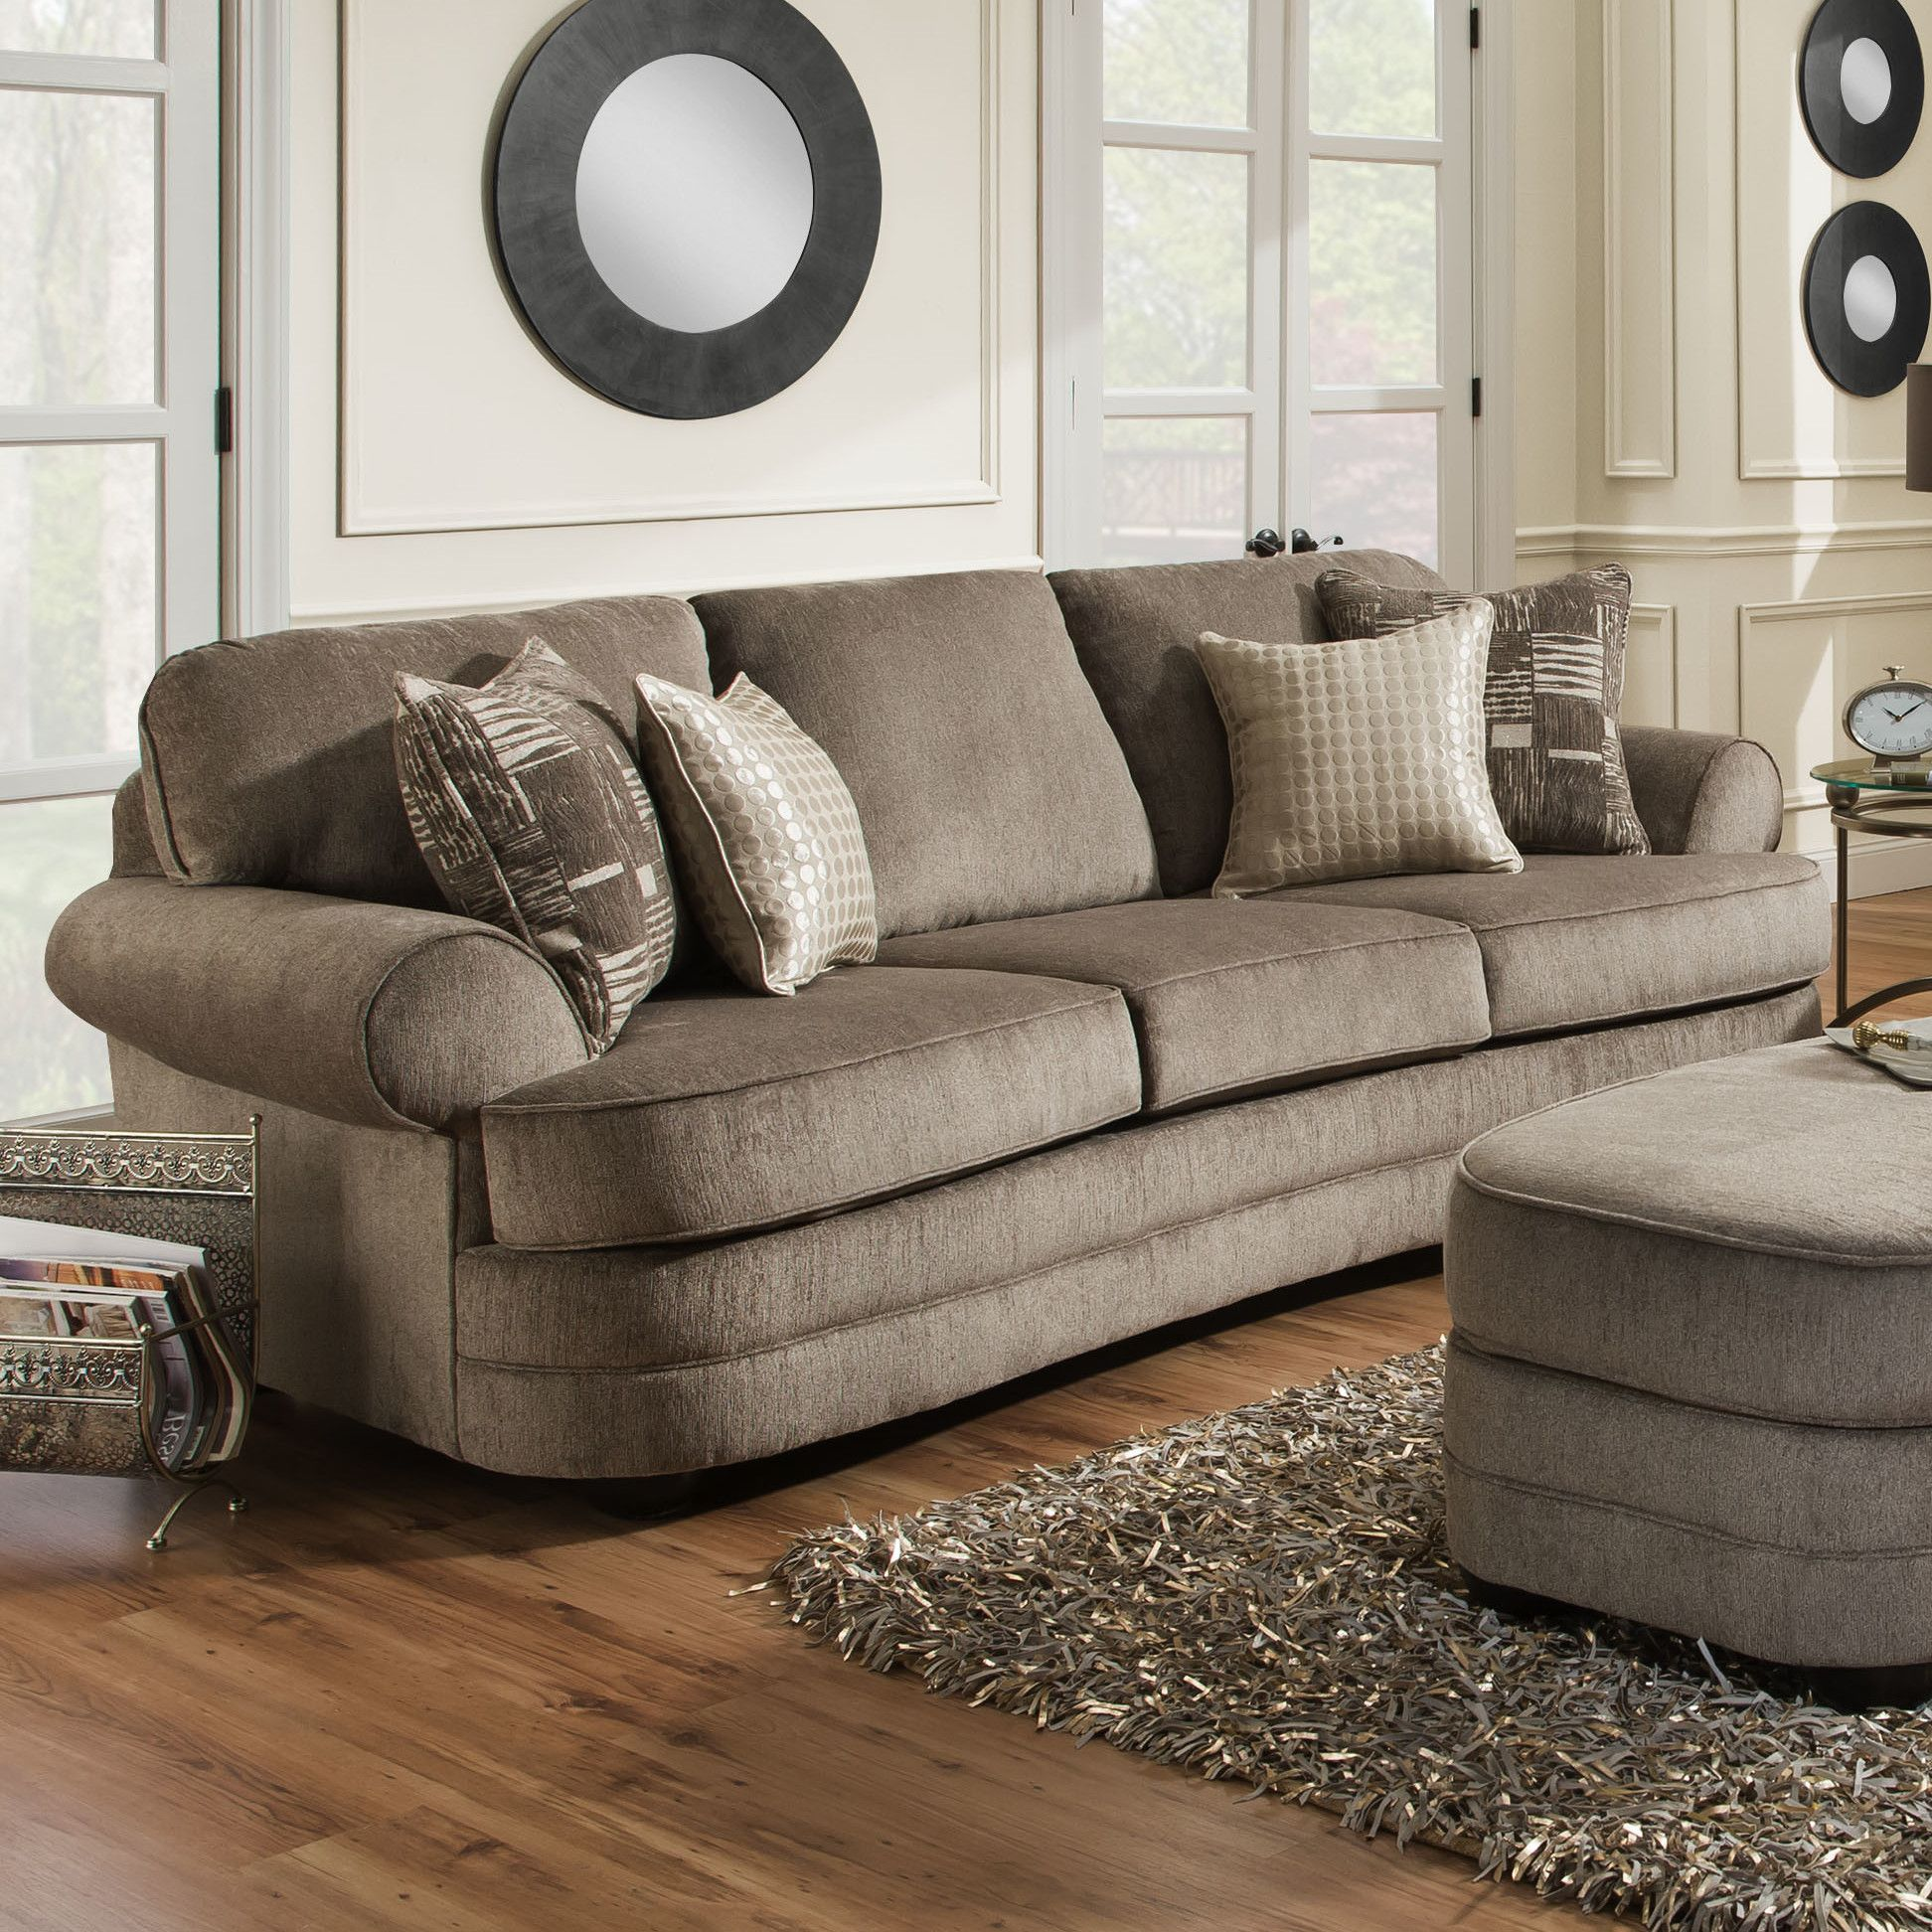 Ashendon 103 Rolled Arms Sofa Sofa Transitional Sofas Royal